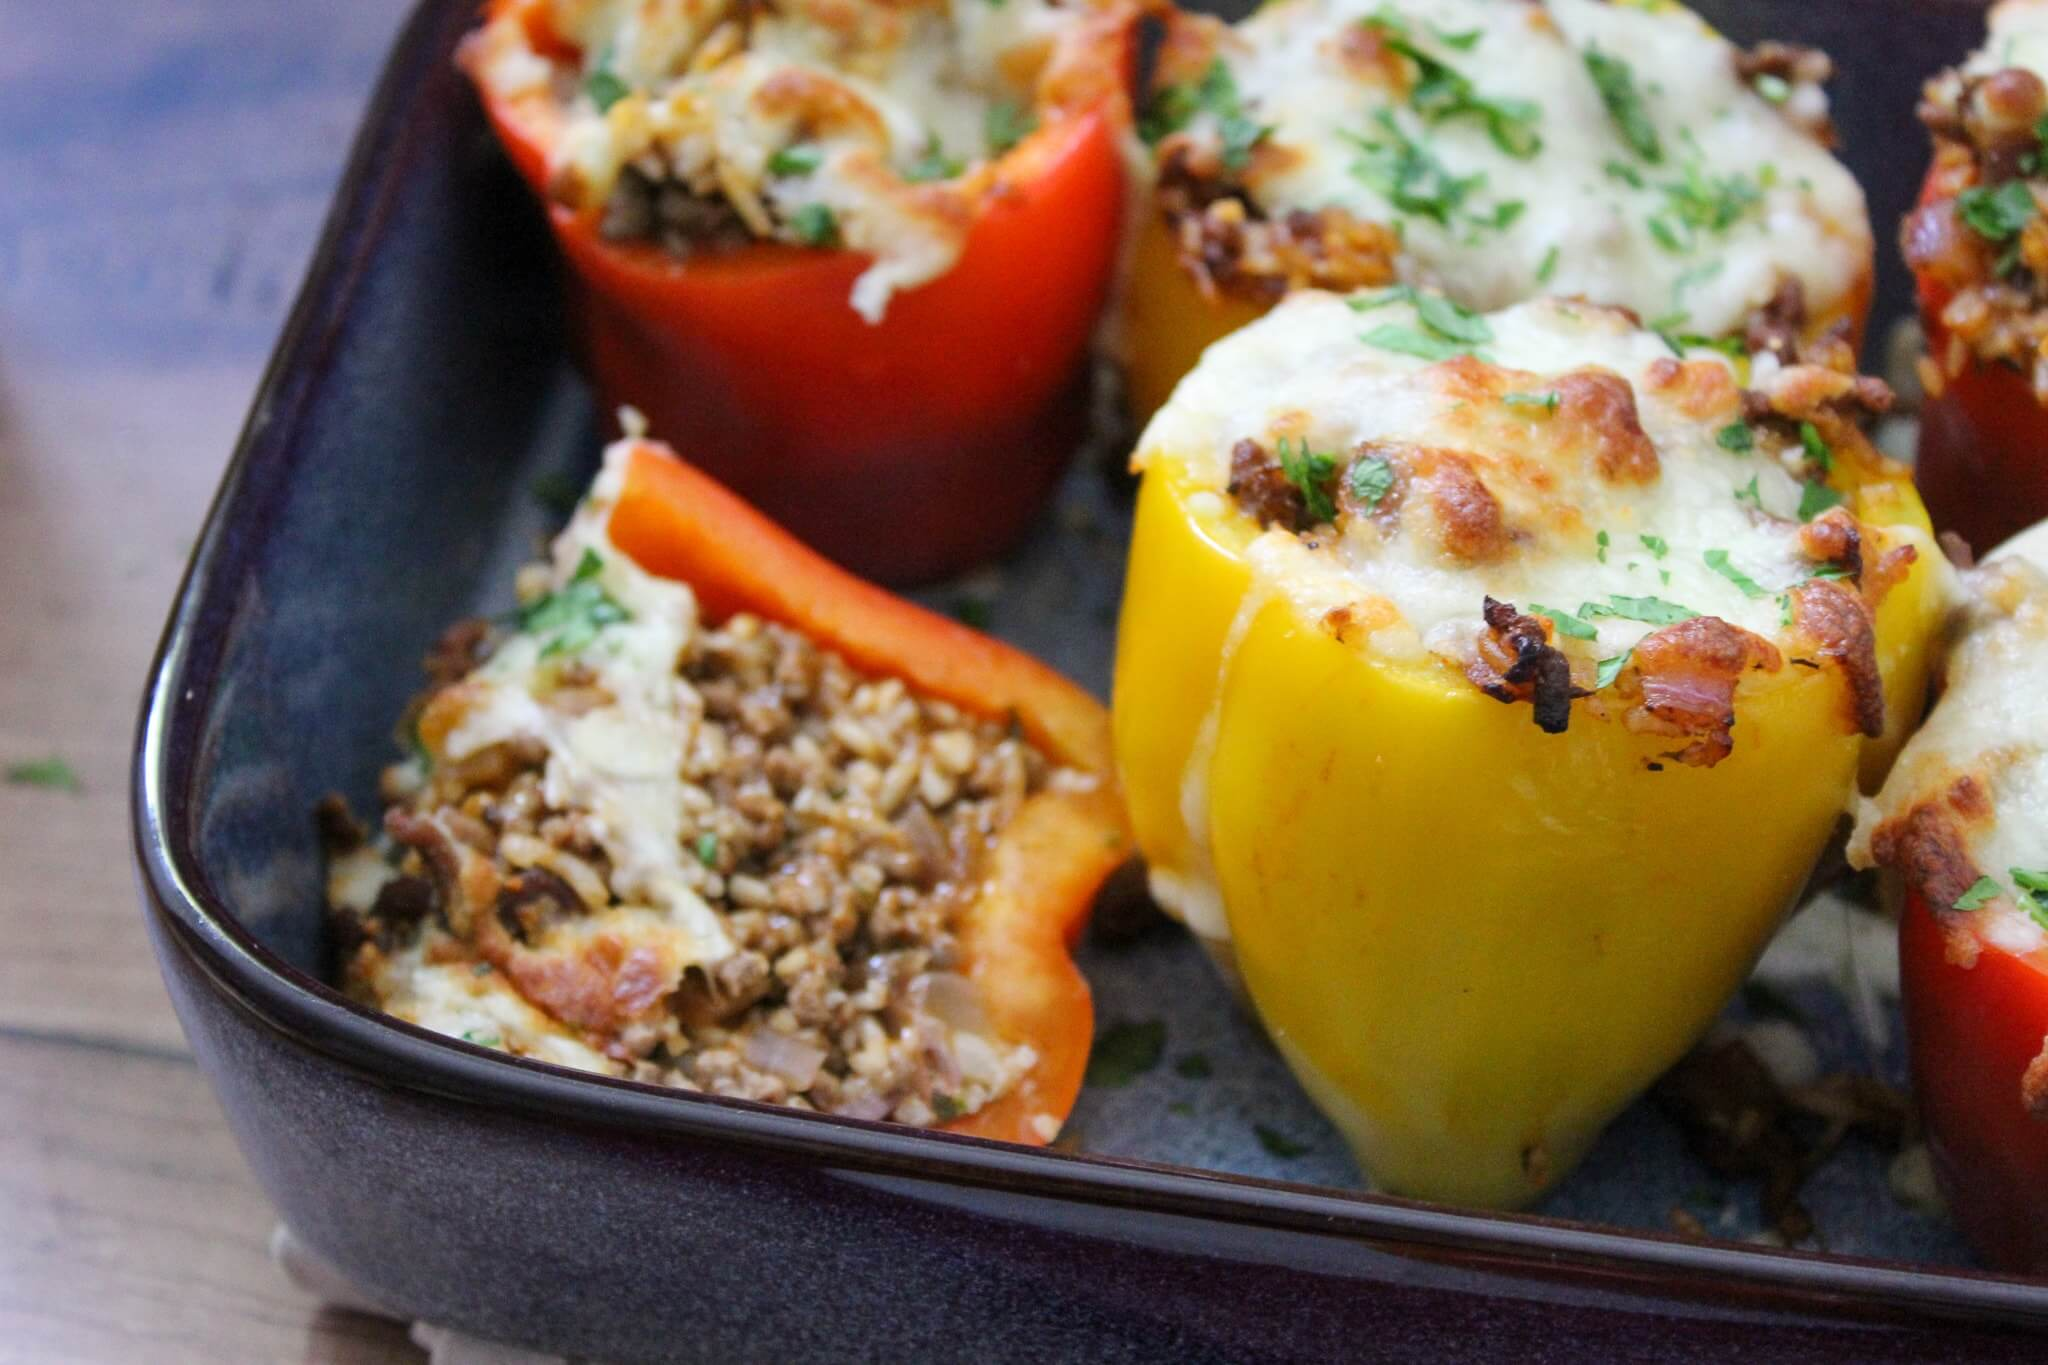 A stuffed pepper cut in half to reveal the meat and rice filling